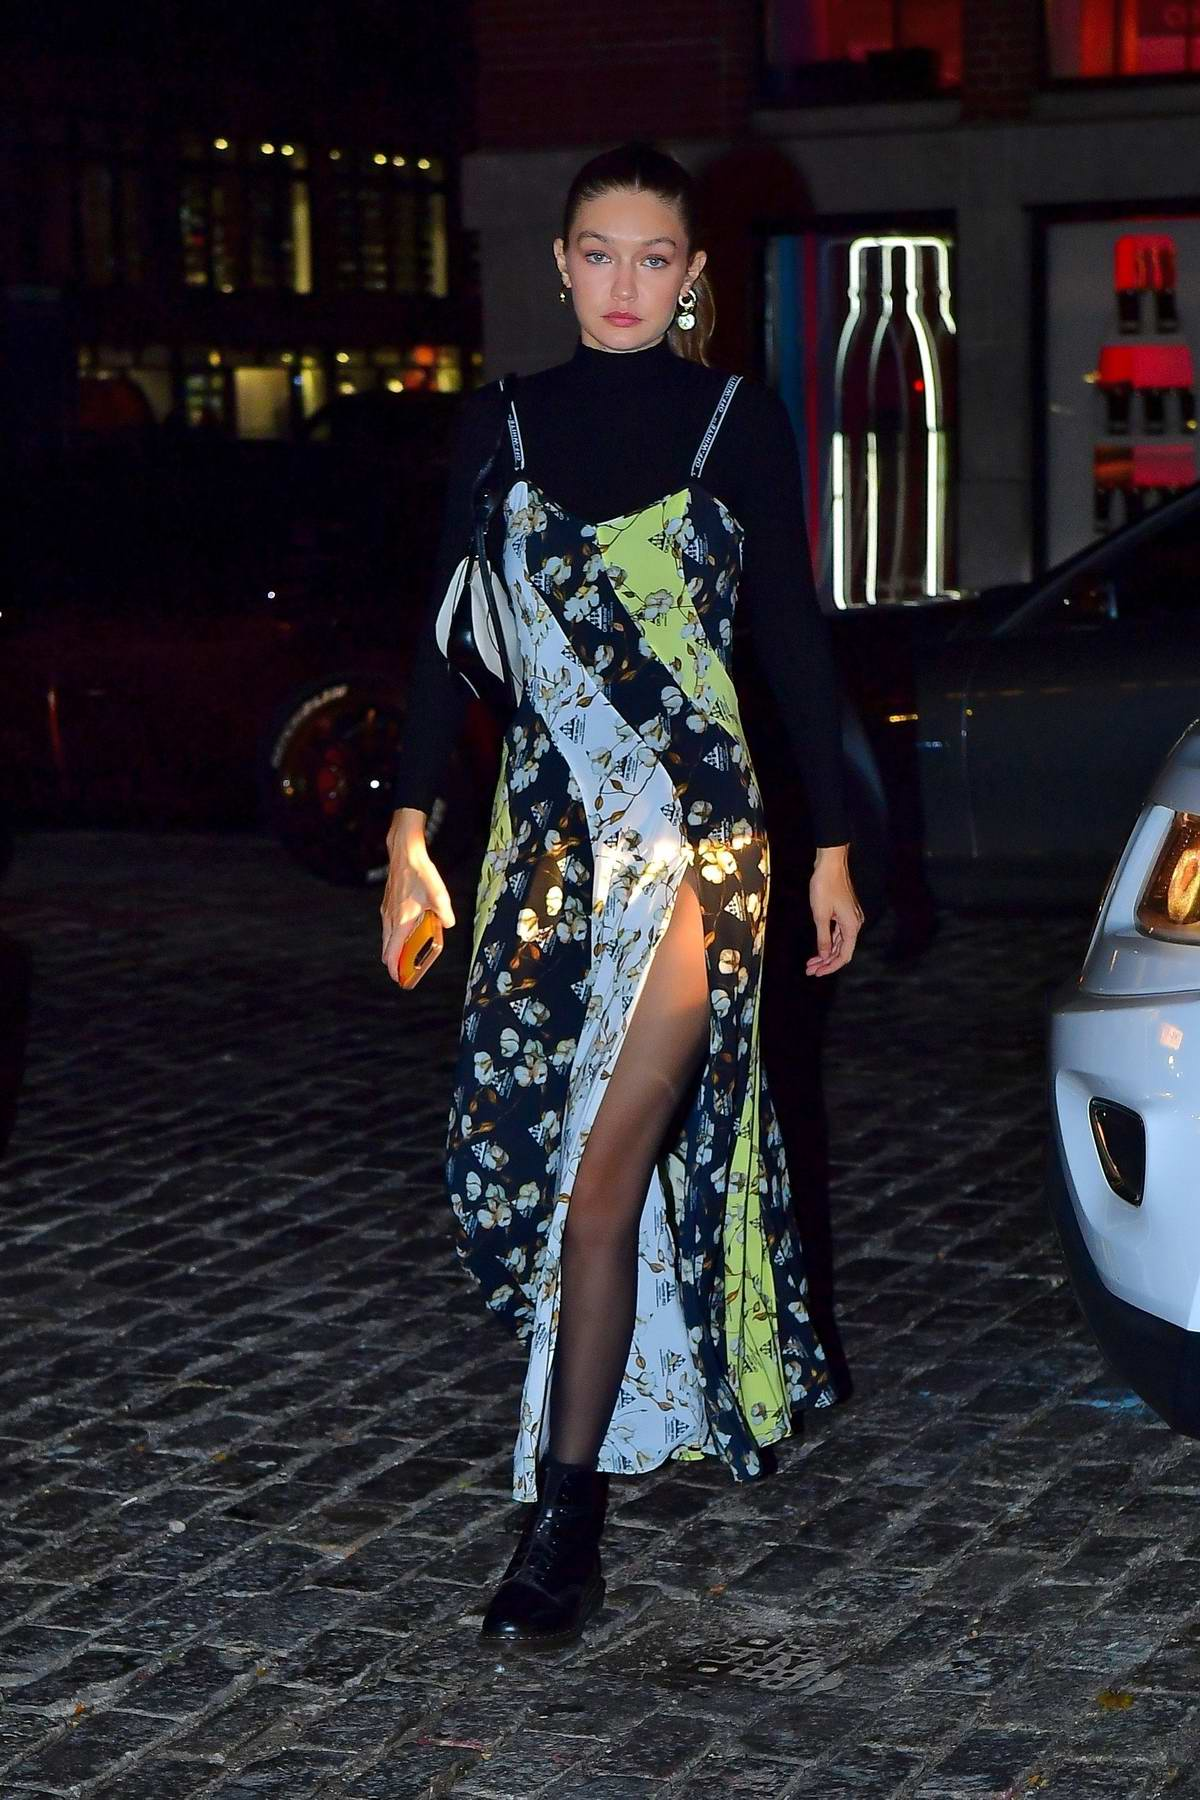 Gigi Hadid looks striking in a floral dress as she steps out for a dinner party in New York City